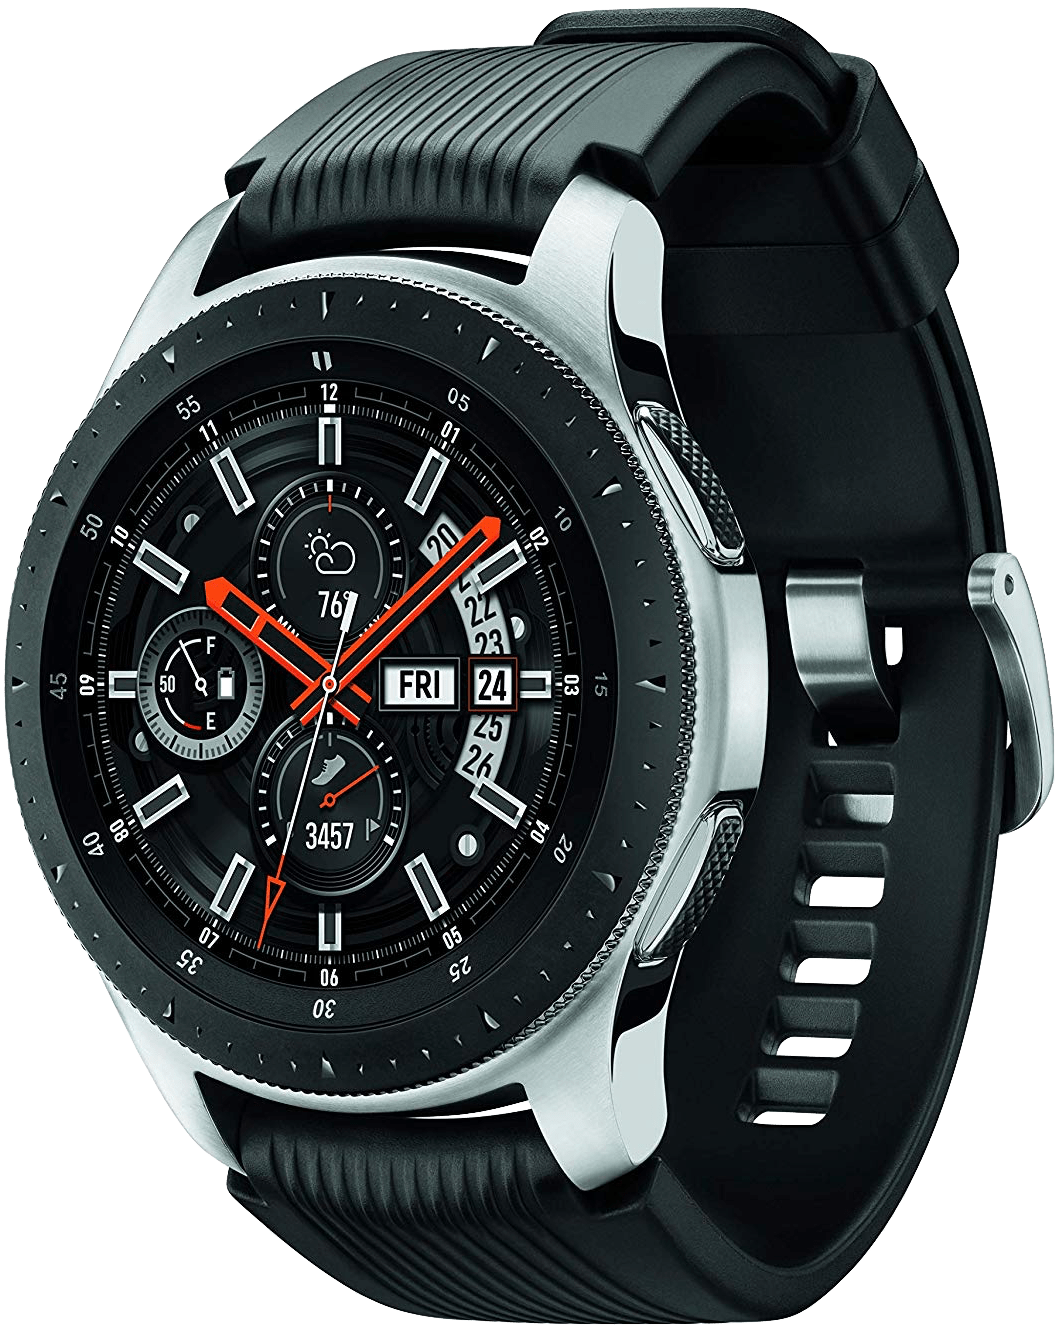 / Vs Samsung Galaxy Watch Vs Ticwatch Pro Which Should You Buy